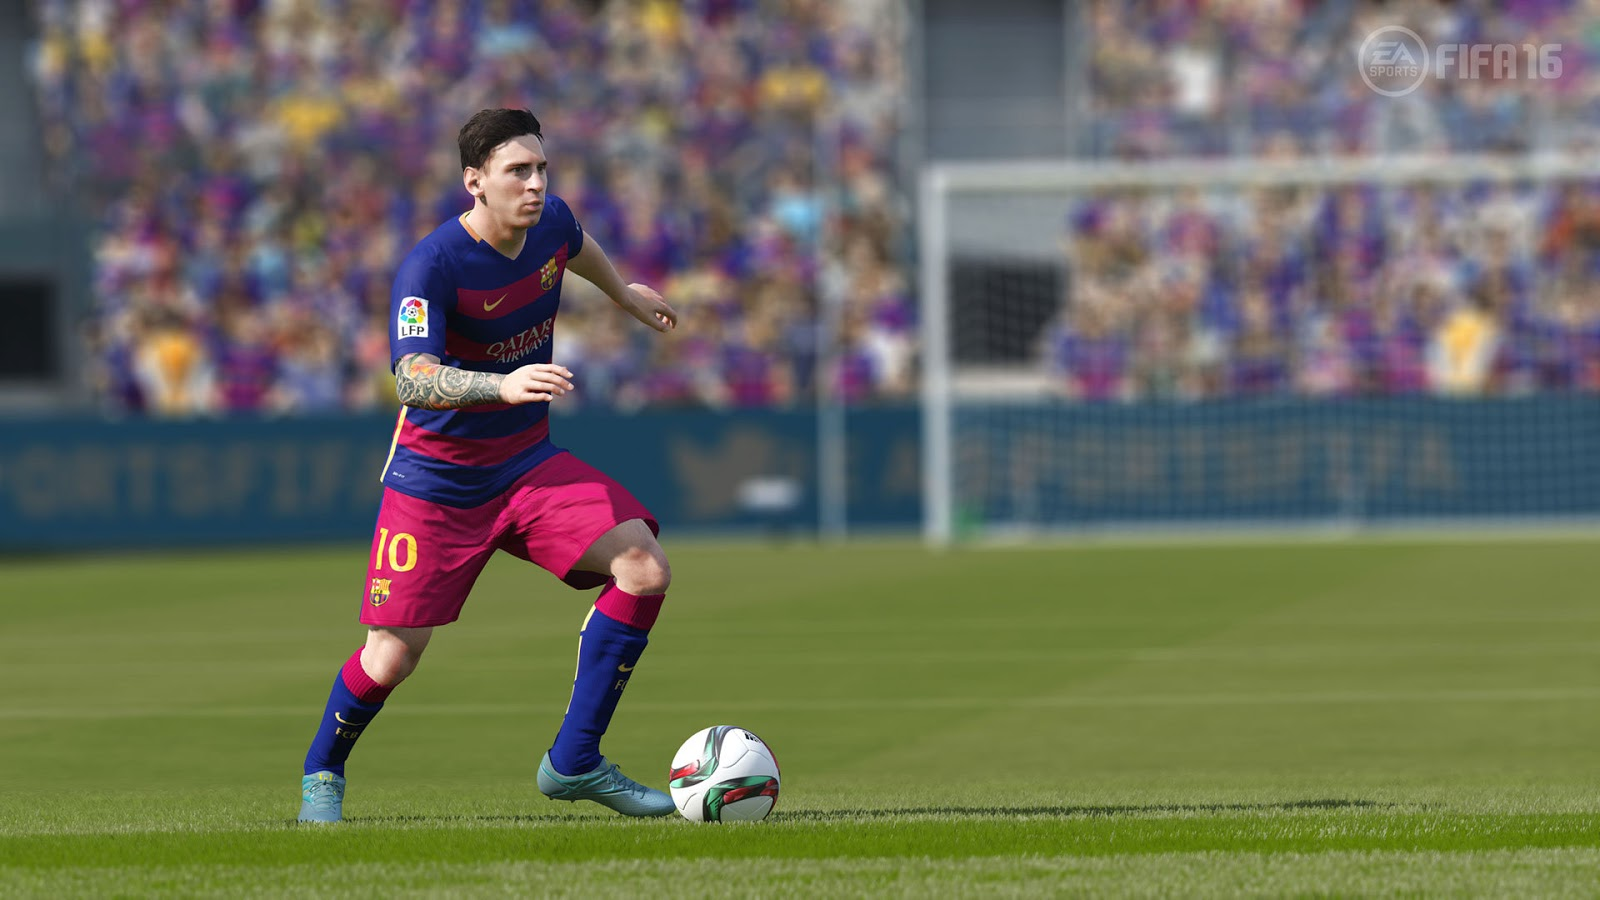 Fifa 16 cracked pc download free full version latest is here.